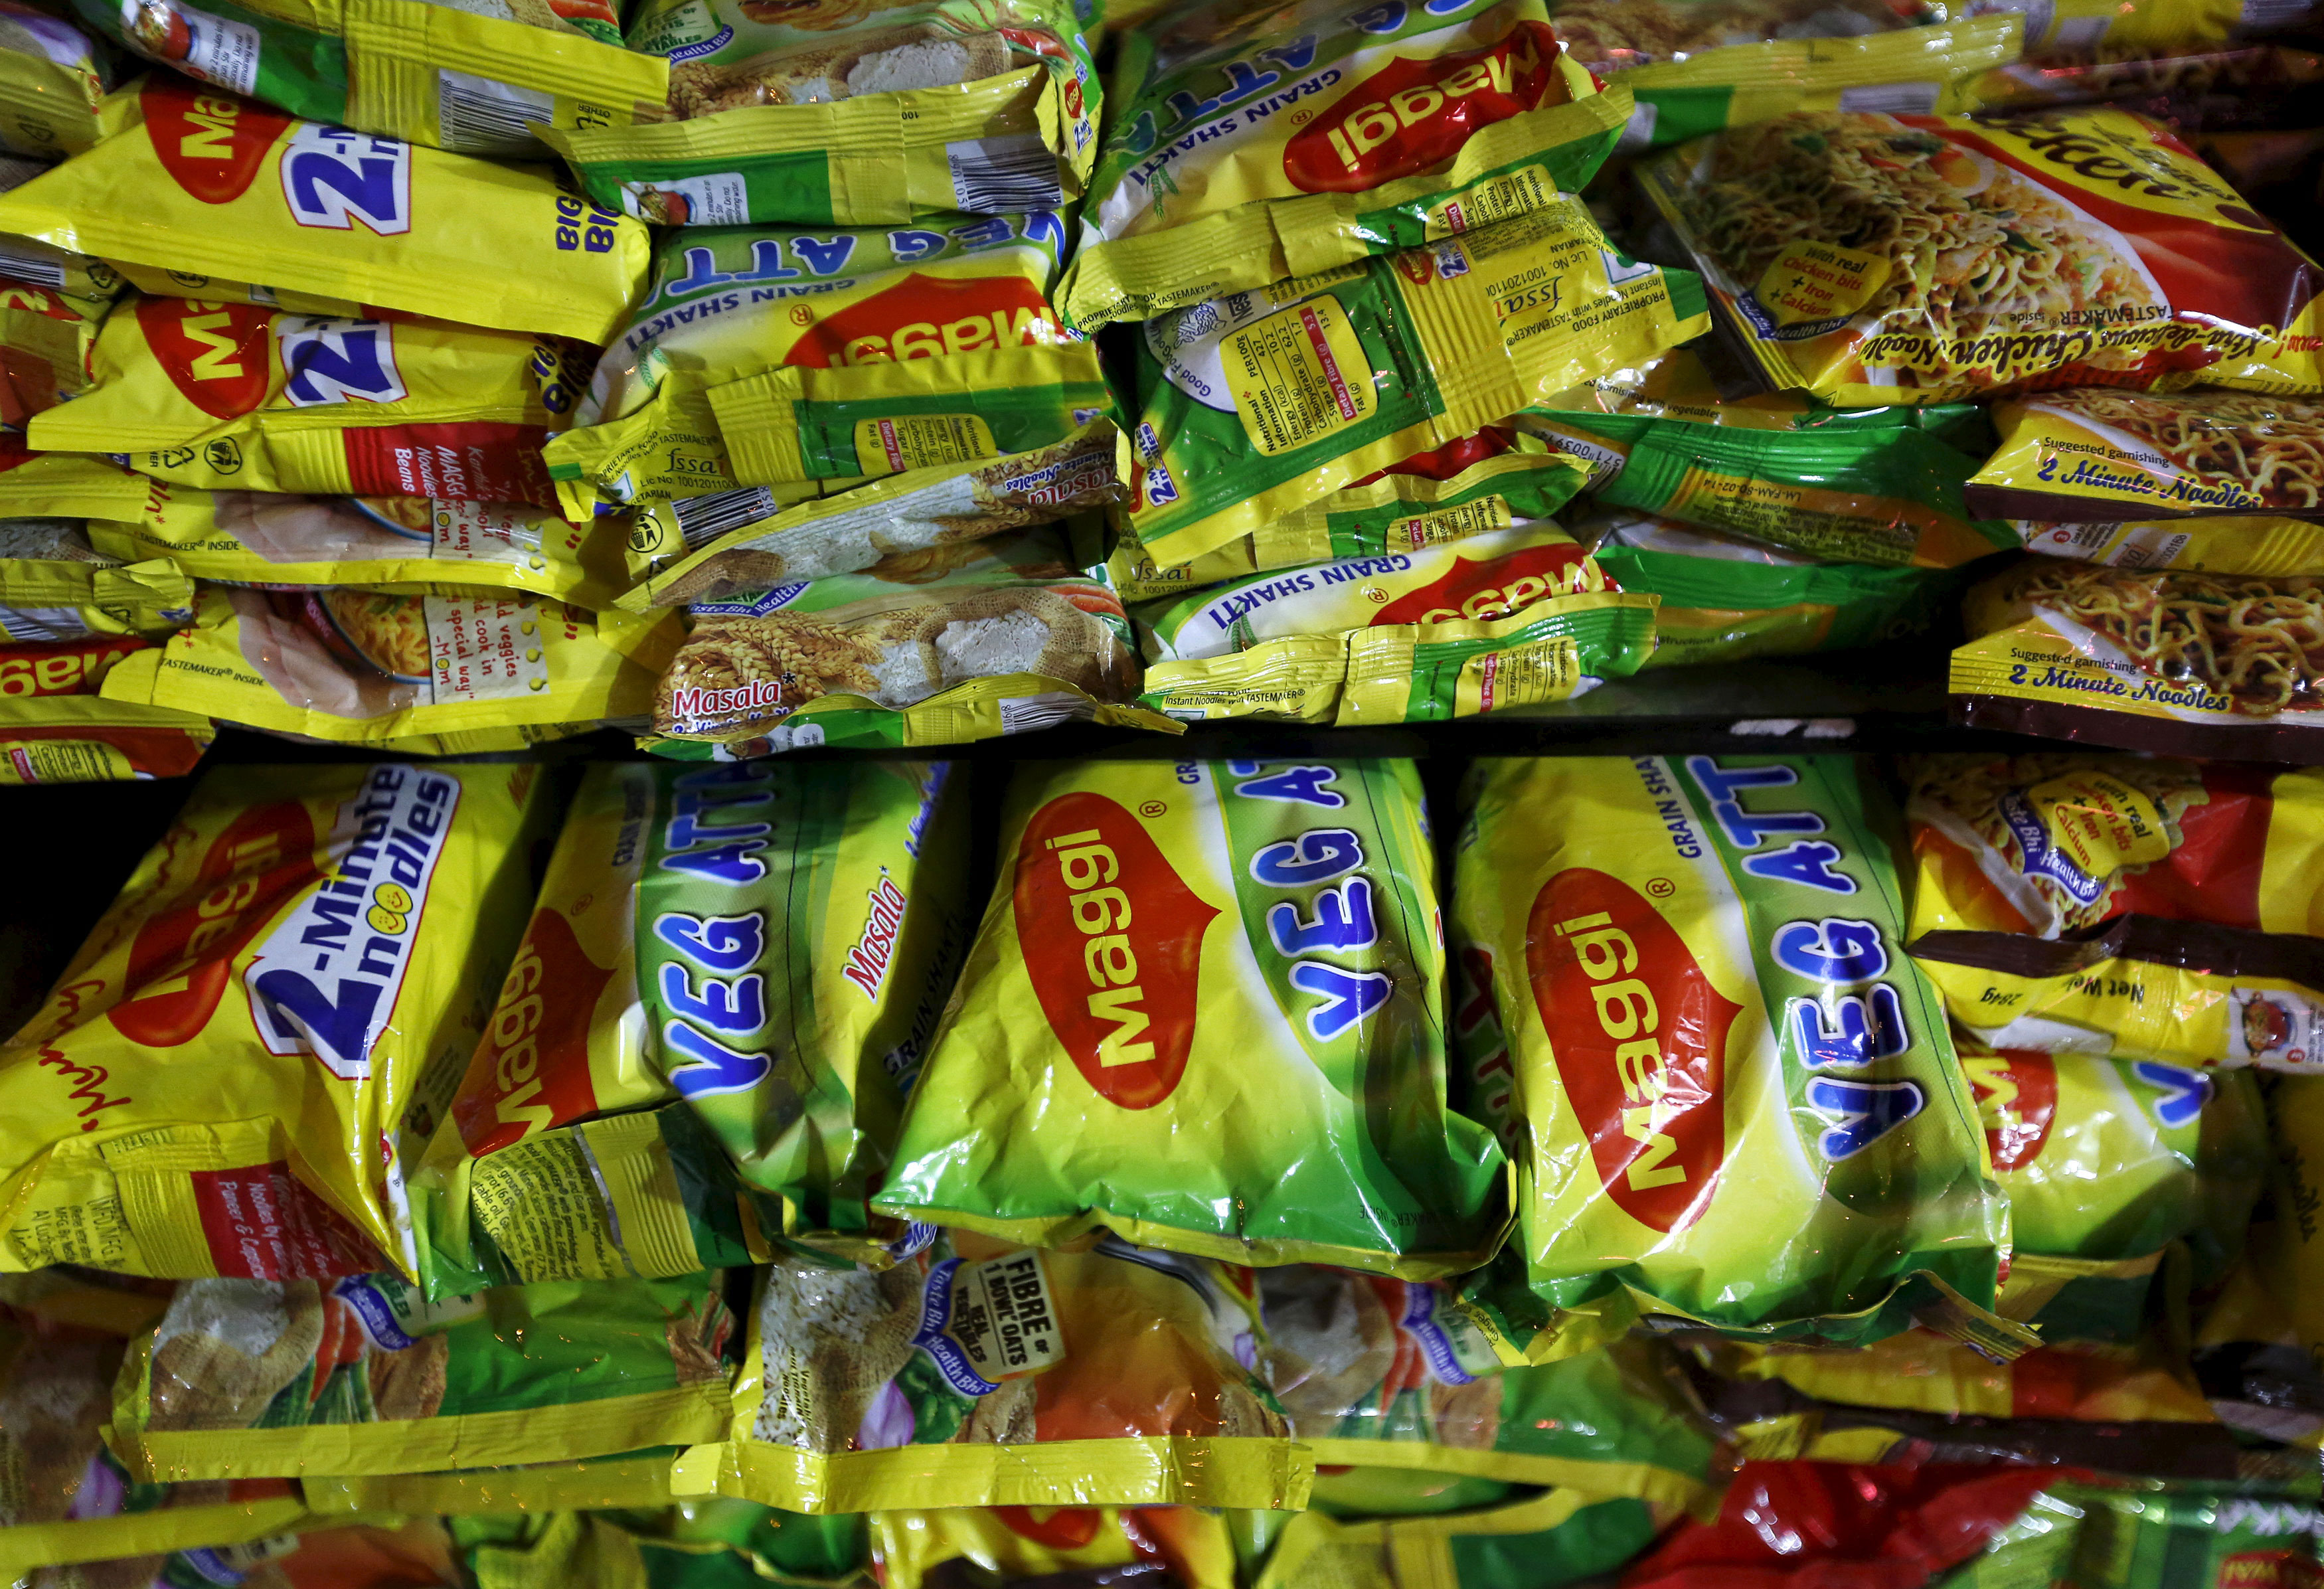 Govt files $100M class action suit against Nestle on behalf of consumers in Maggi row